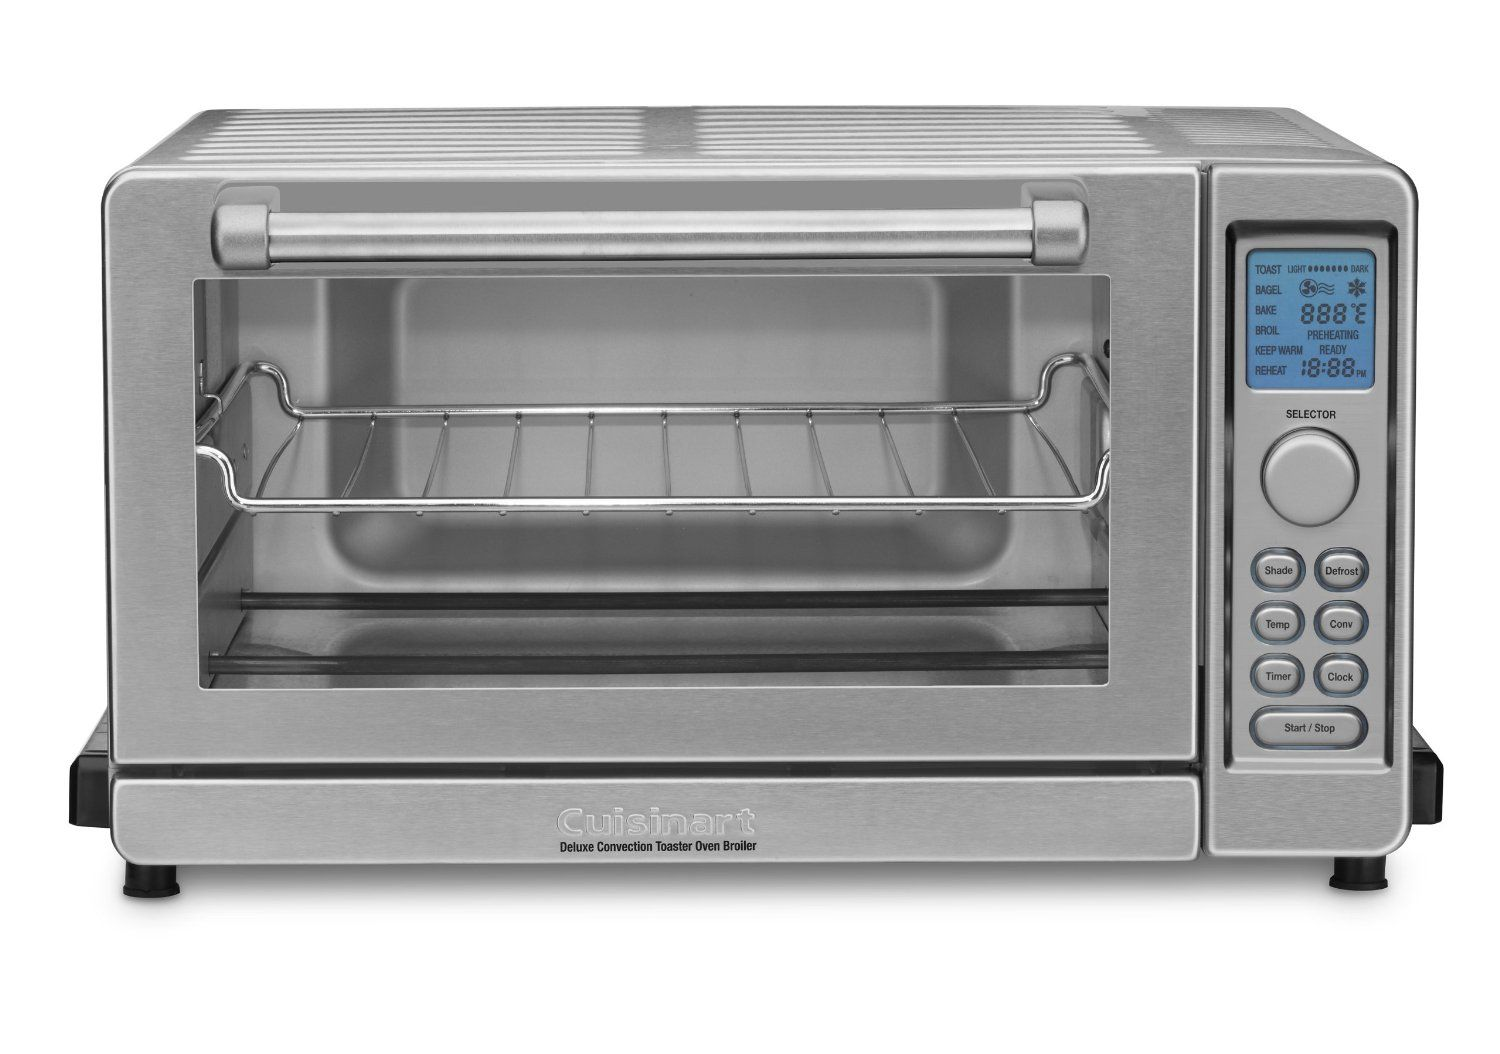 Amazon Com Cuisinart Tob 135 Deluxe Convection Toaster Oven Broiler Brushed Stainless Kitch Cuisinart Toaster Oven Cuisinart Toaster Convection Toaster Oven